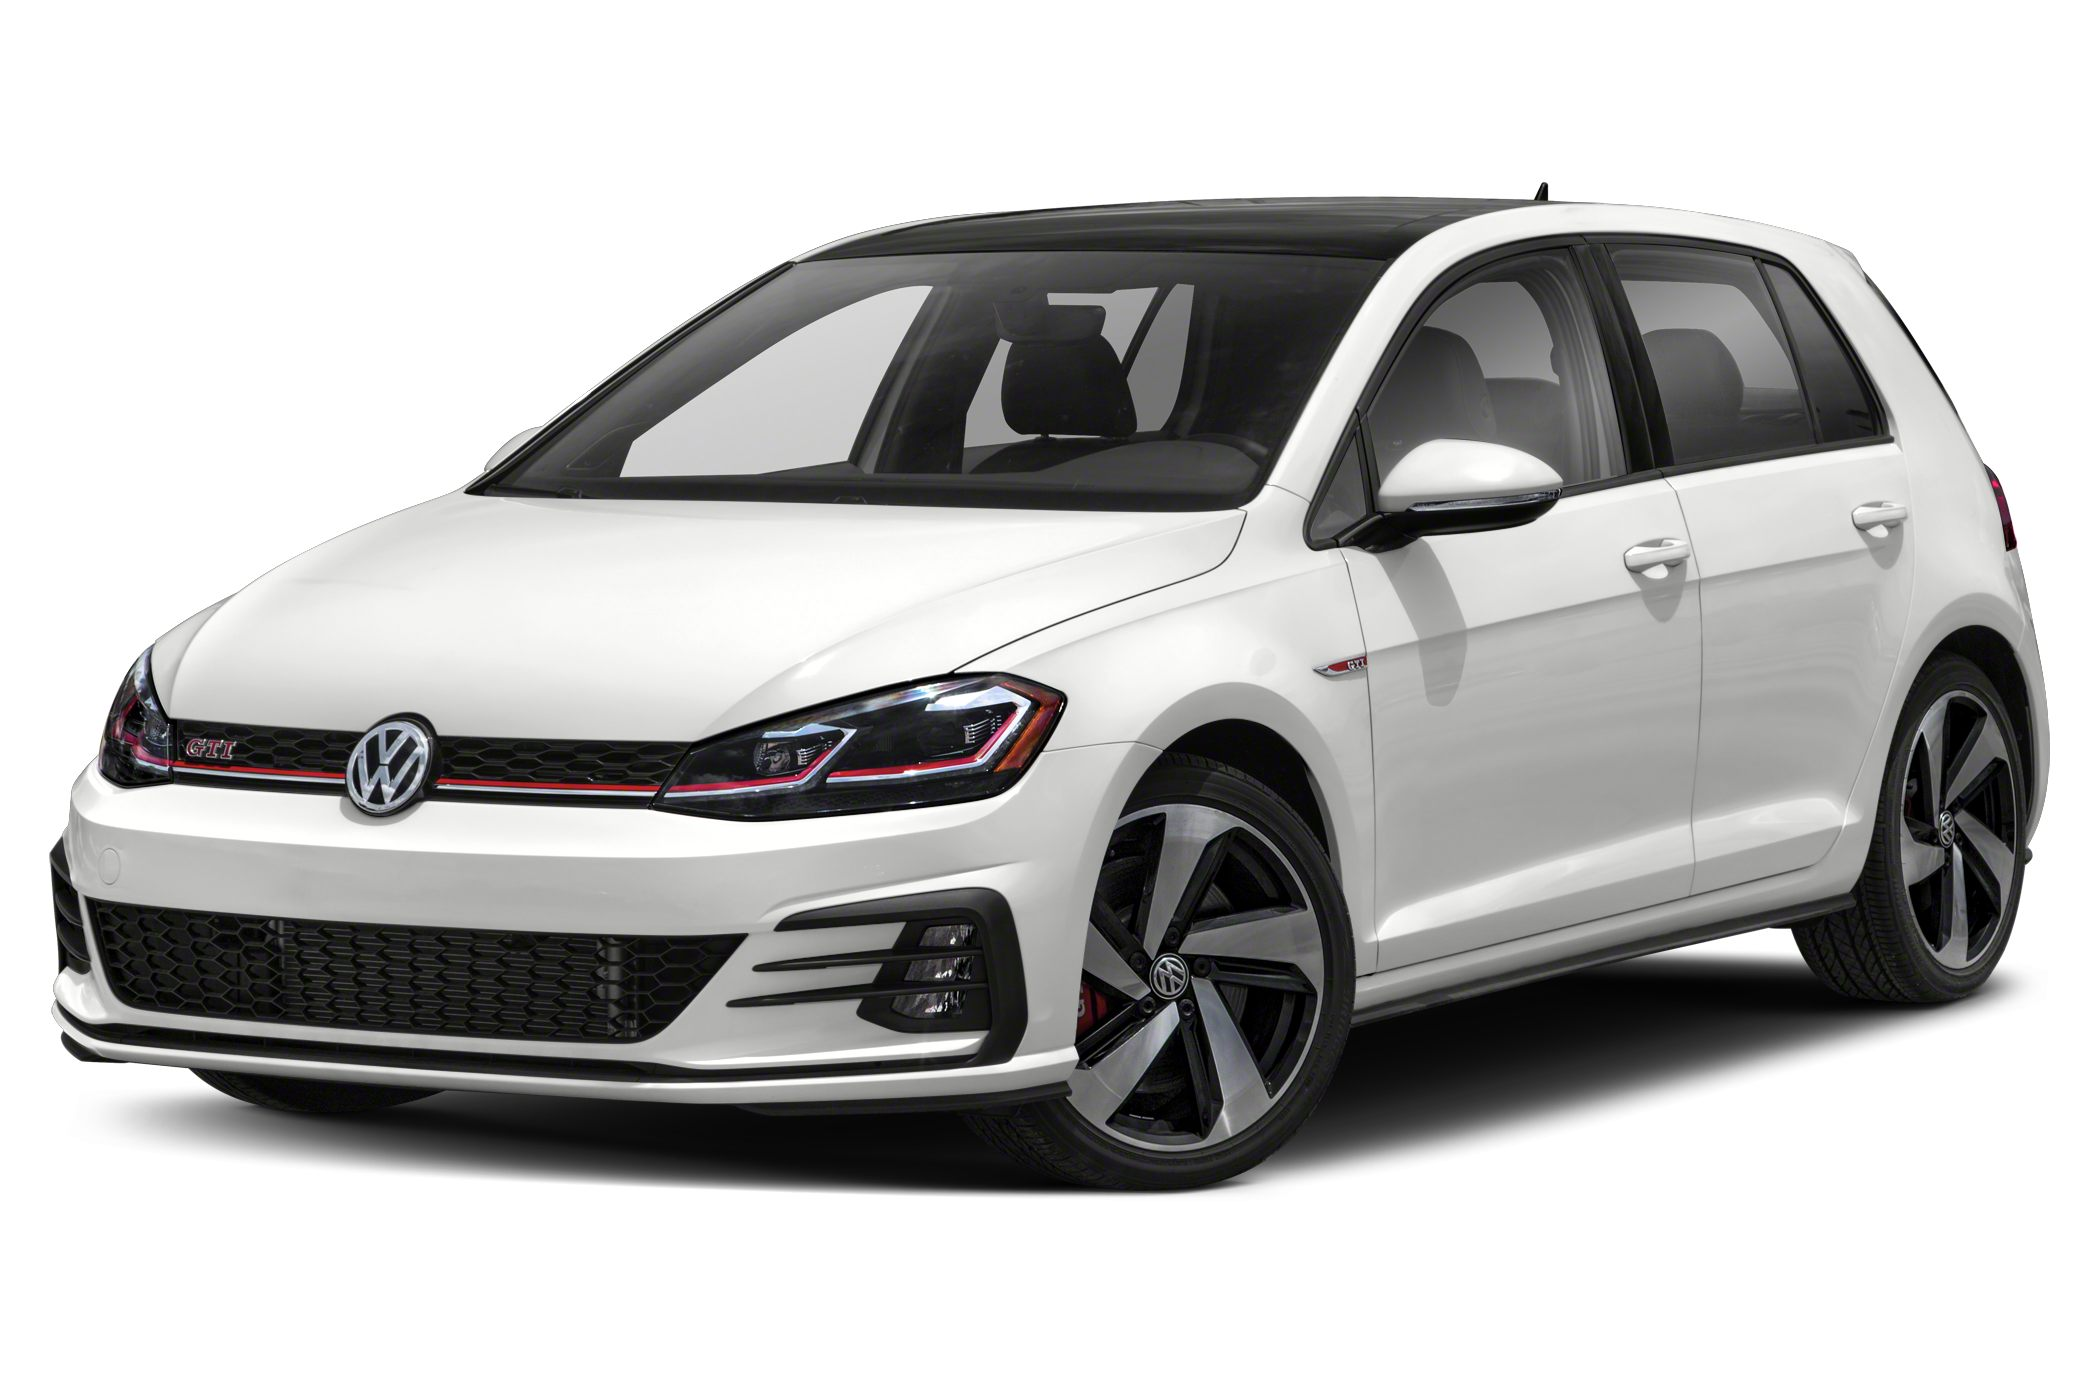 2019 Volkswagen Golf Gti 2 0t Autobahn 4dr Hatchback Specs And Prices